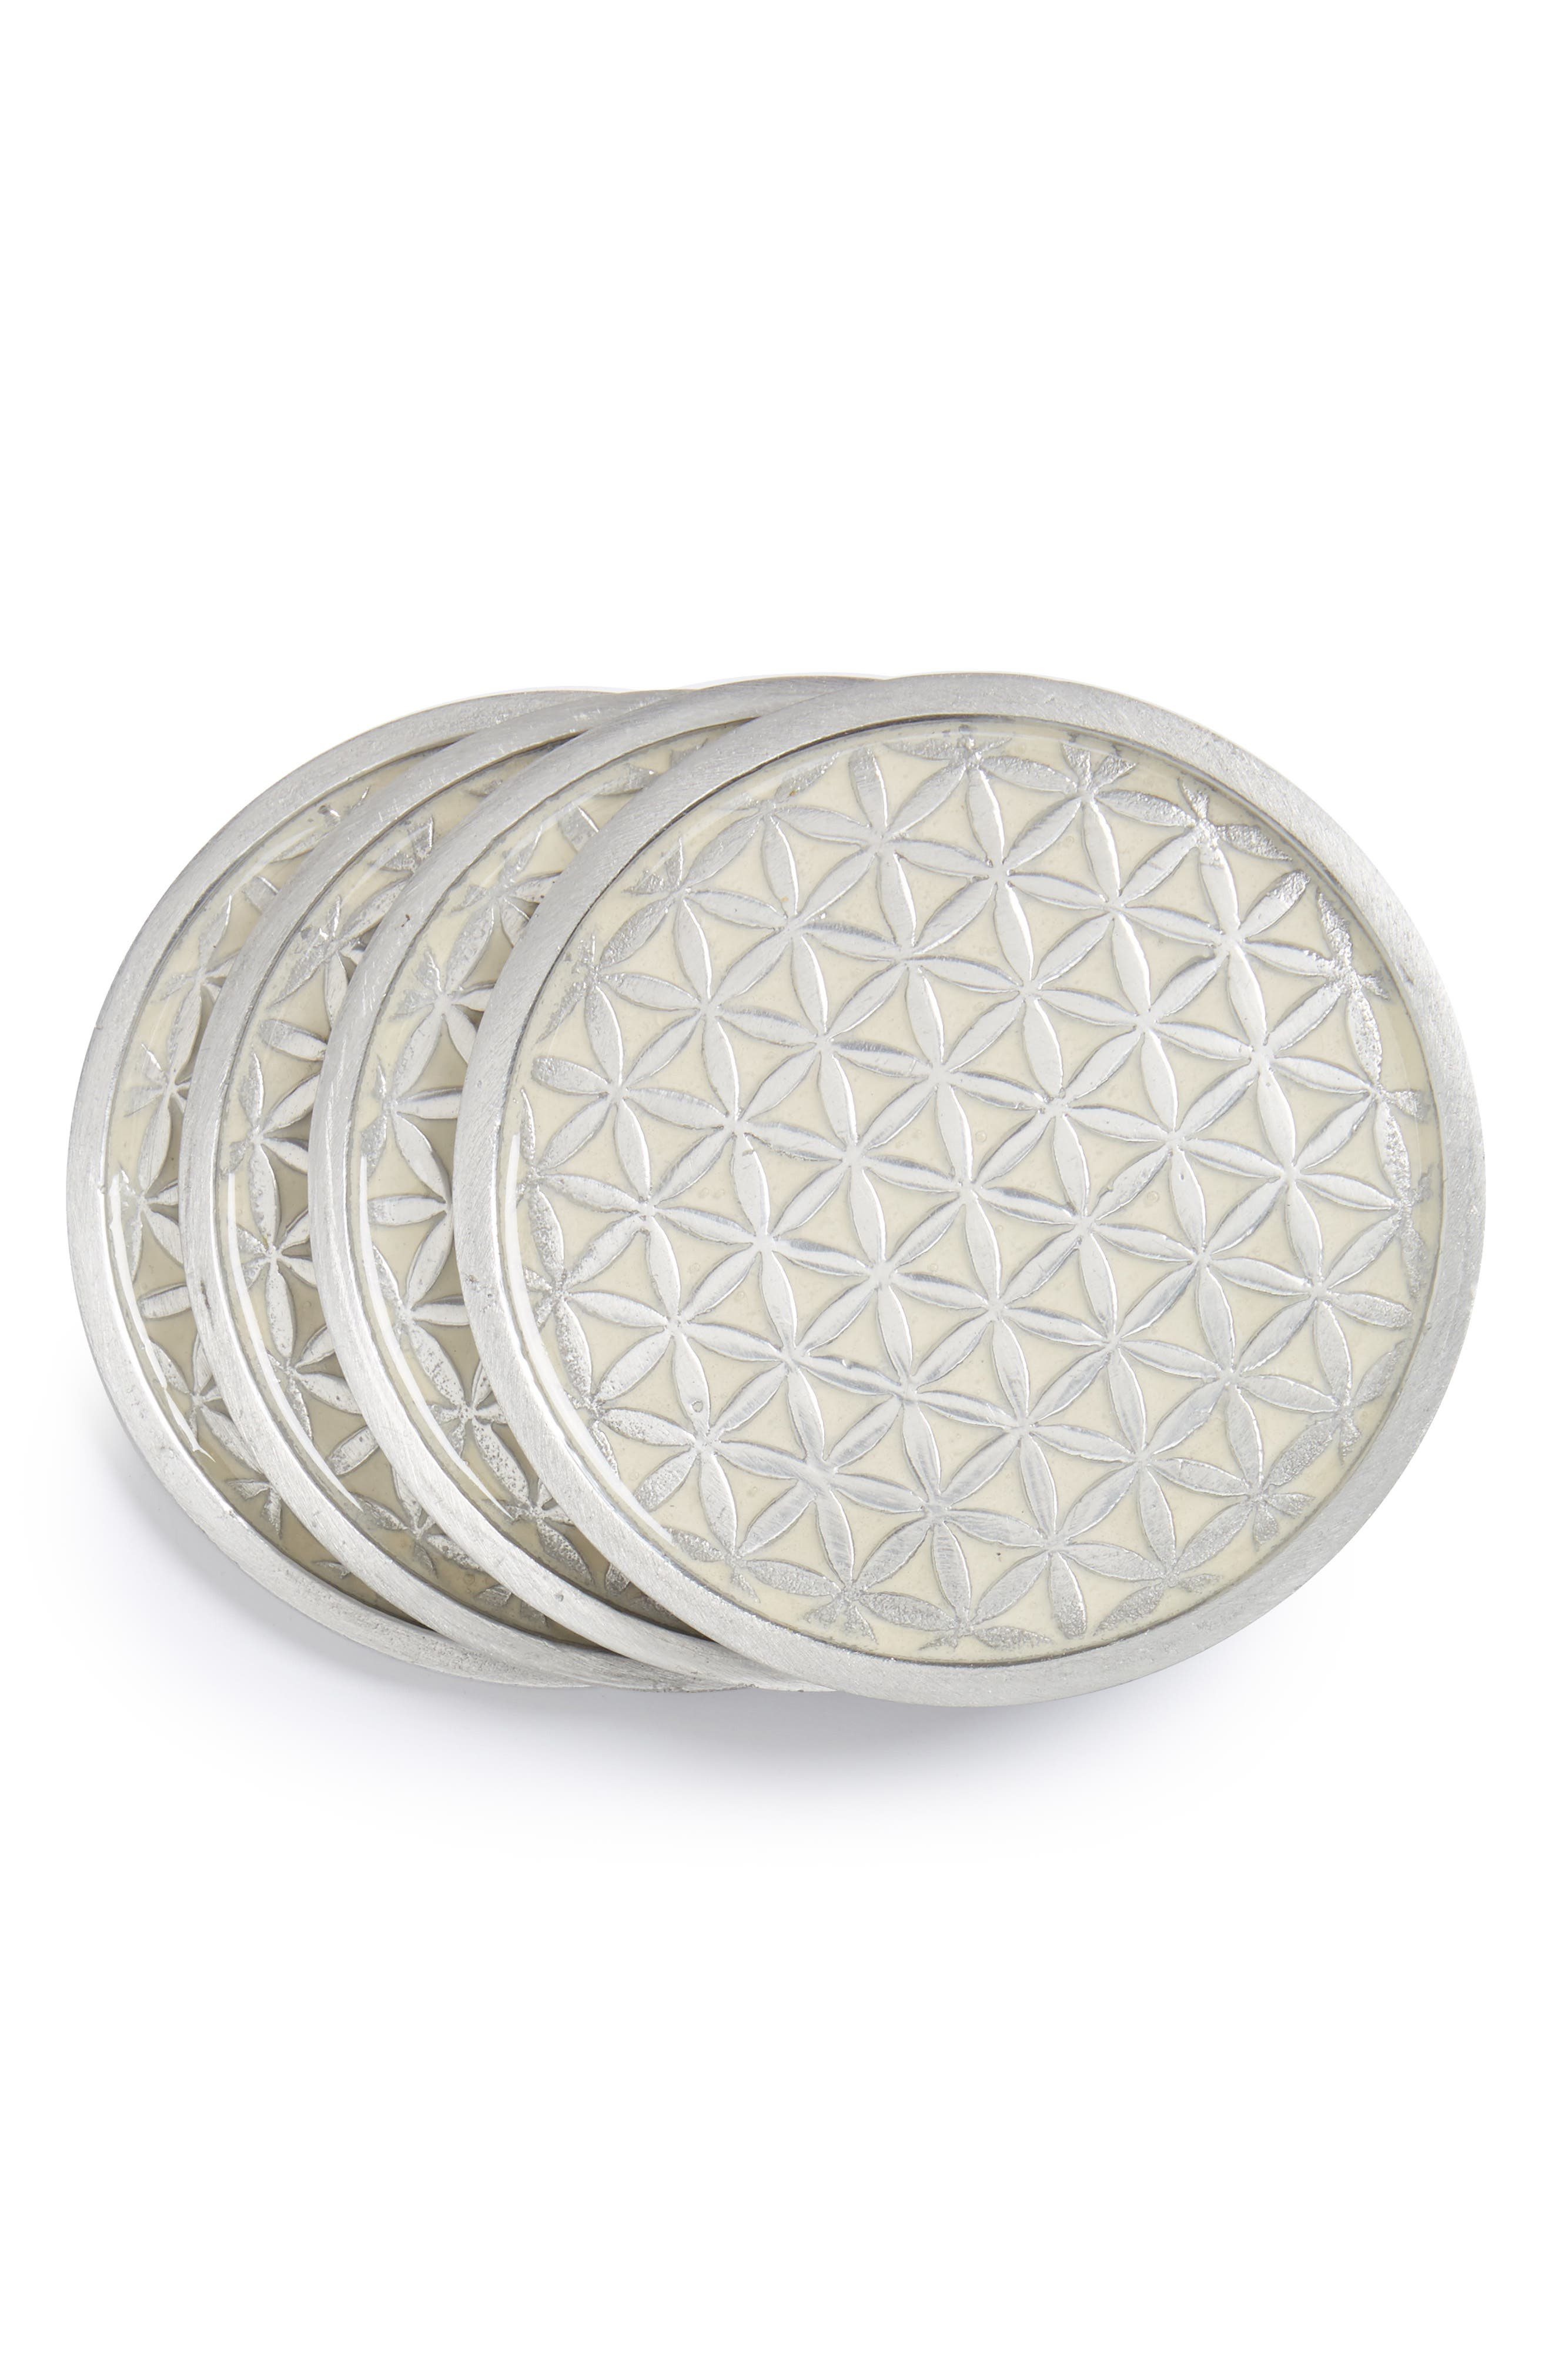 Flower of Life Set of 4 Coasters,                             Main thumbnail 1, color,                             100